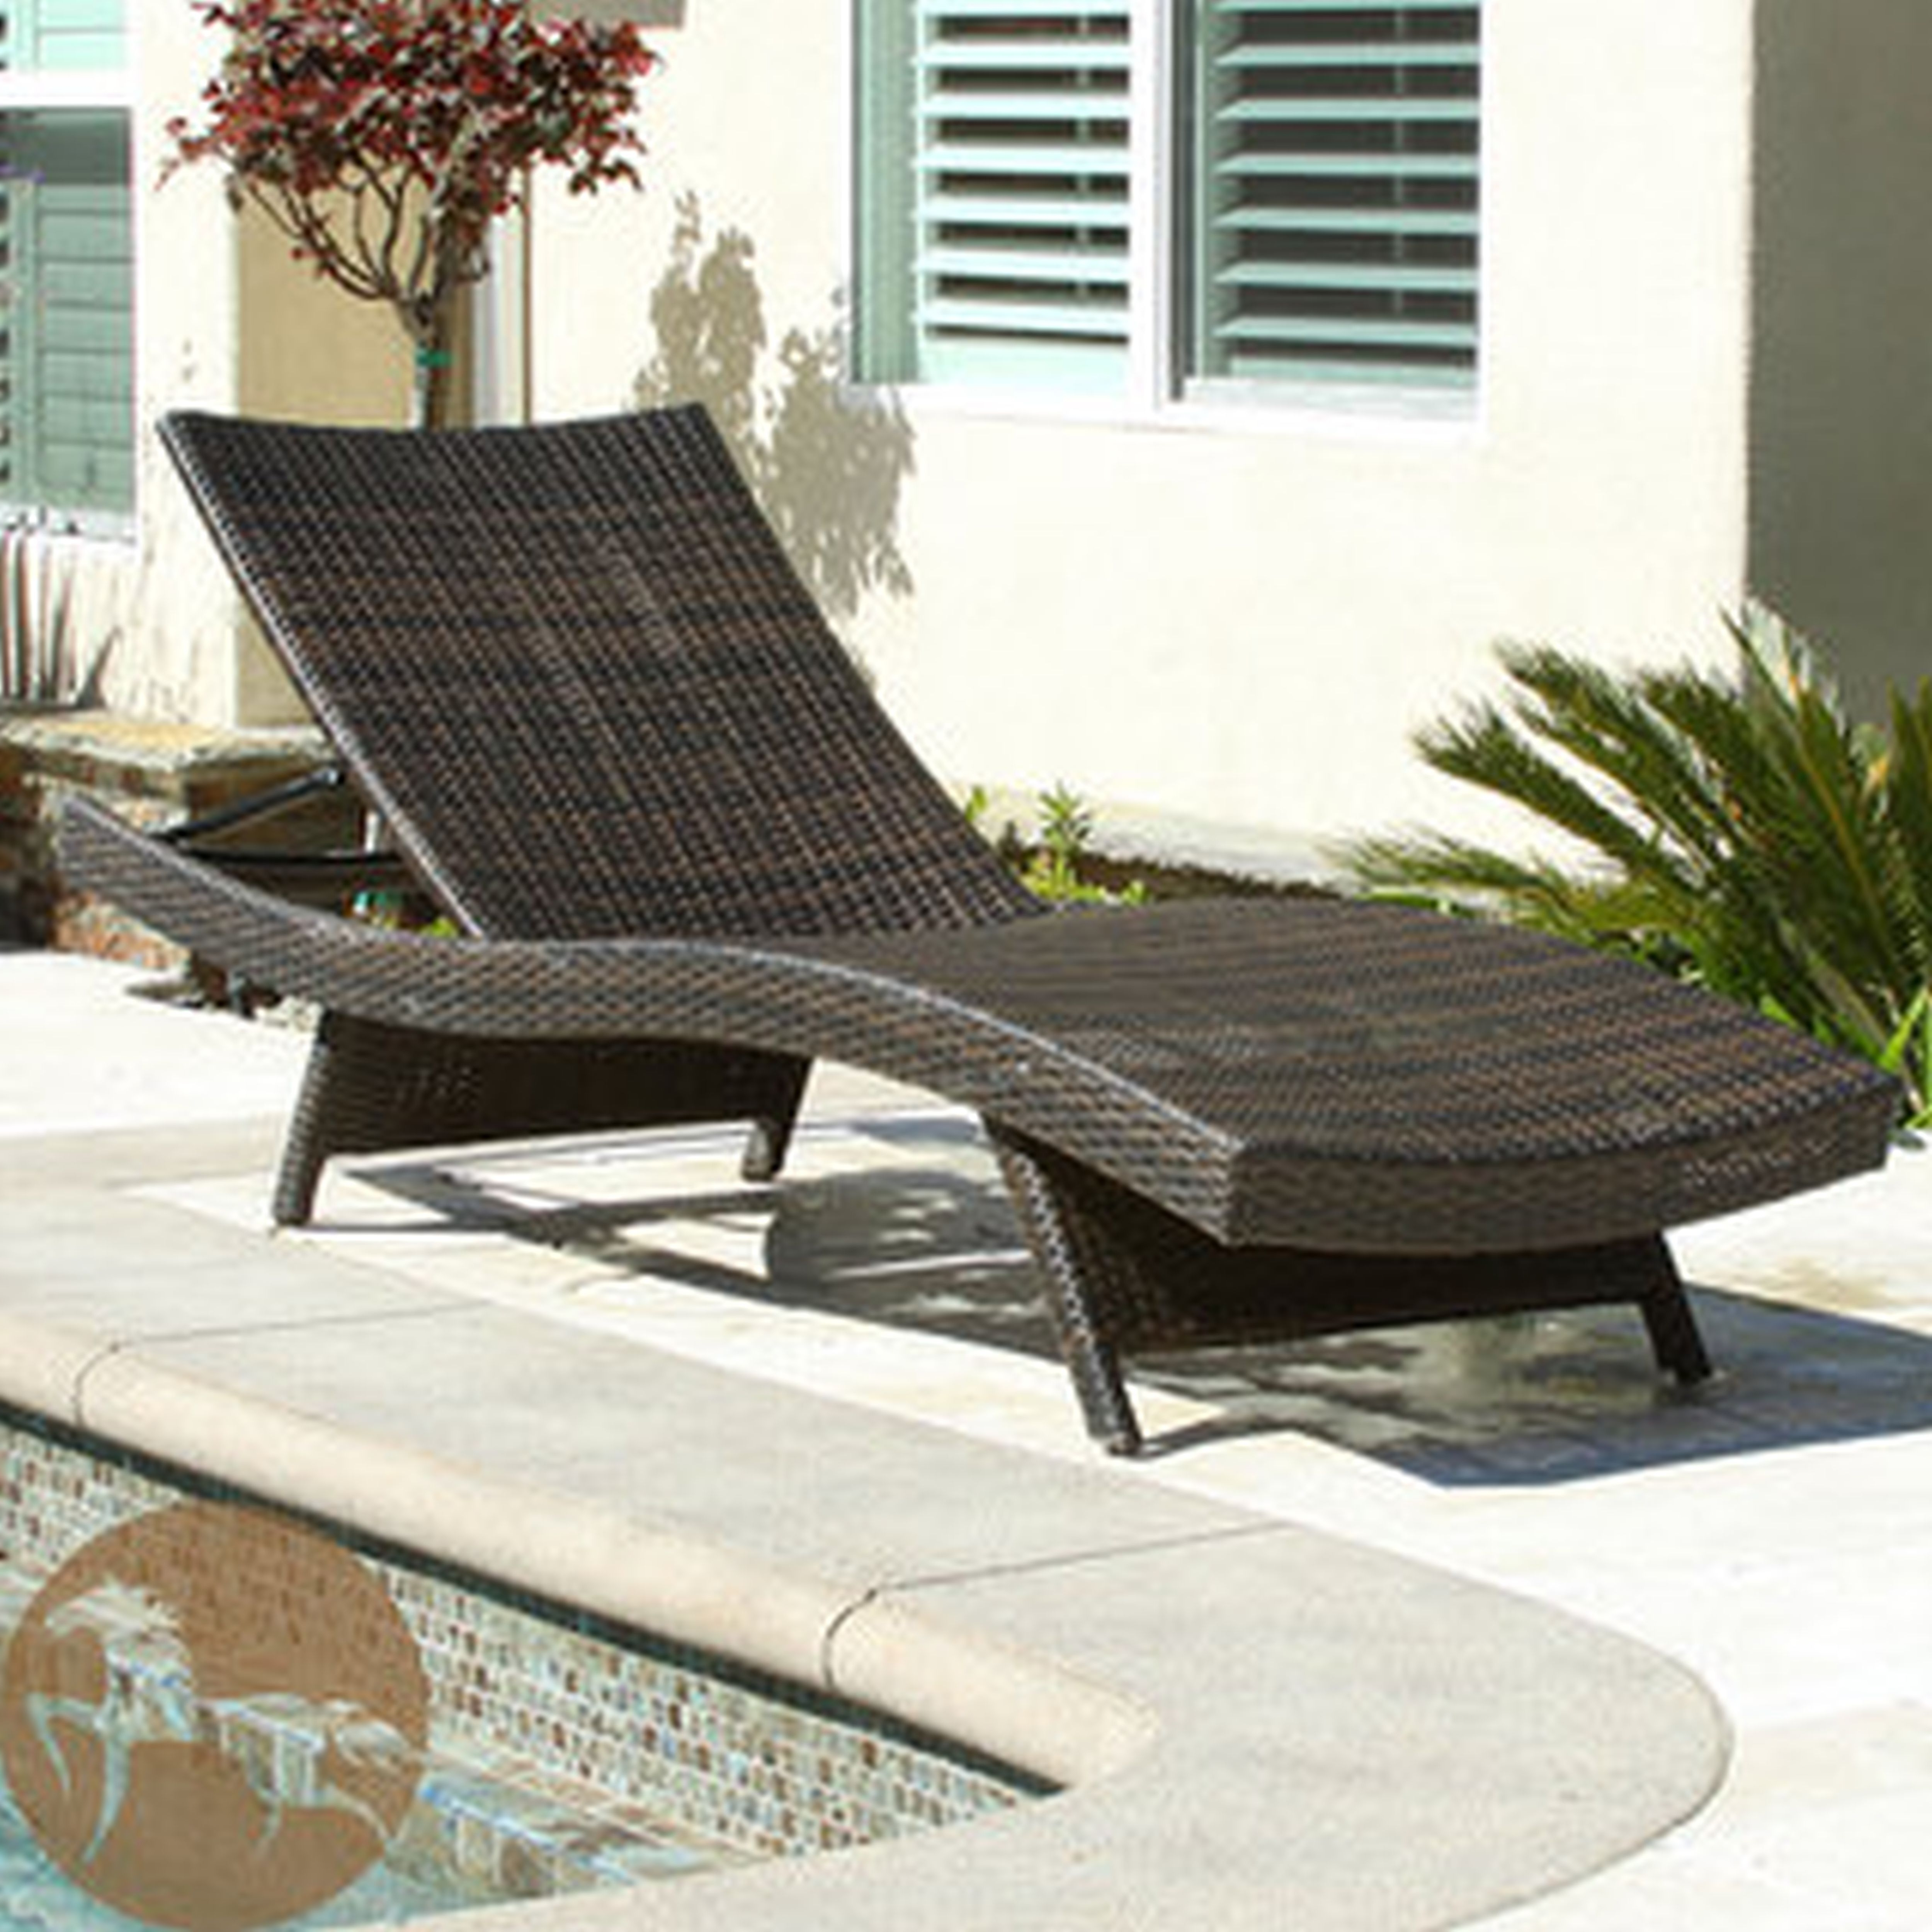 Boca Chaise Lounge Outdoor Chairs With Pillows Regarding Most Popular Amazing Chaise Lounge Chair Outdoor (35 Photos) (View 7 of 15)